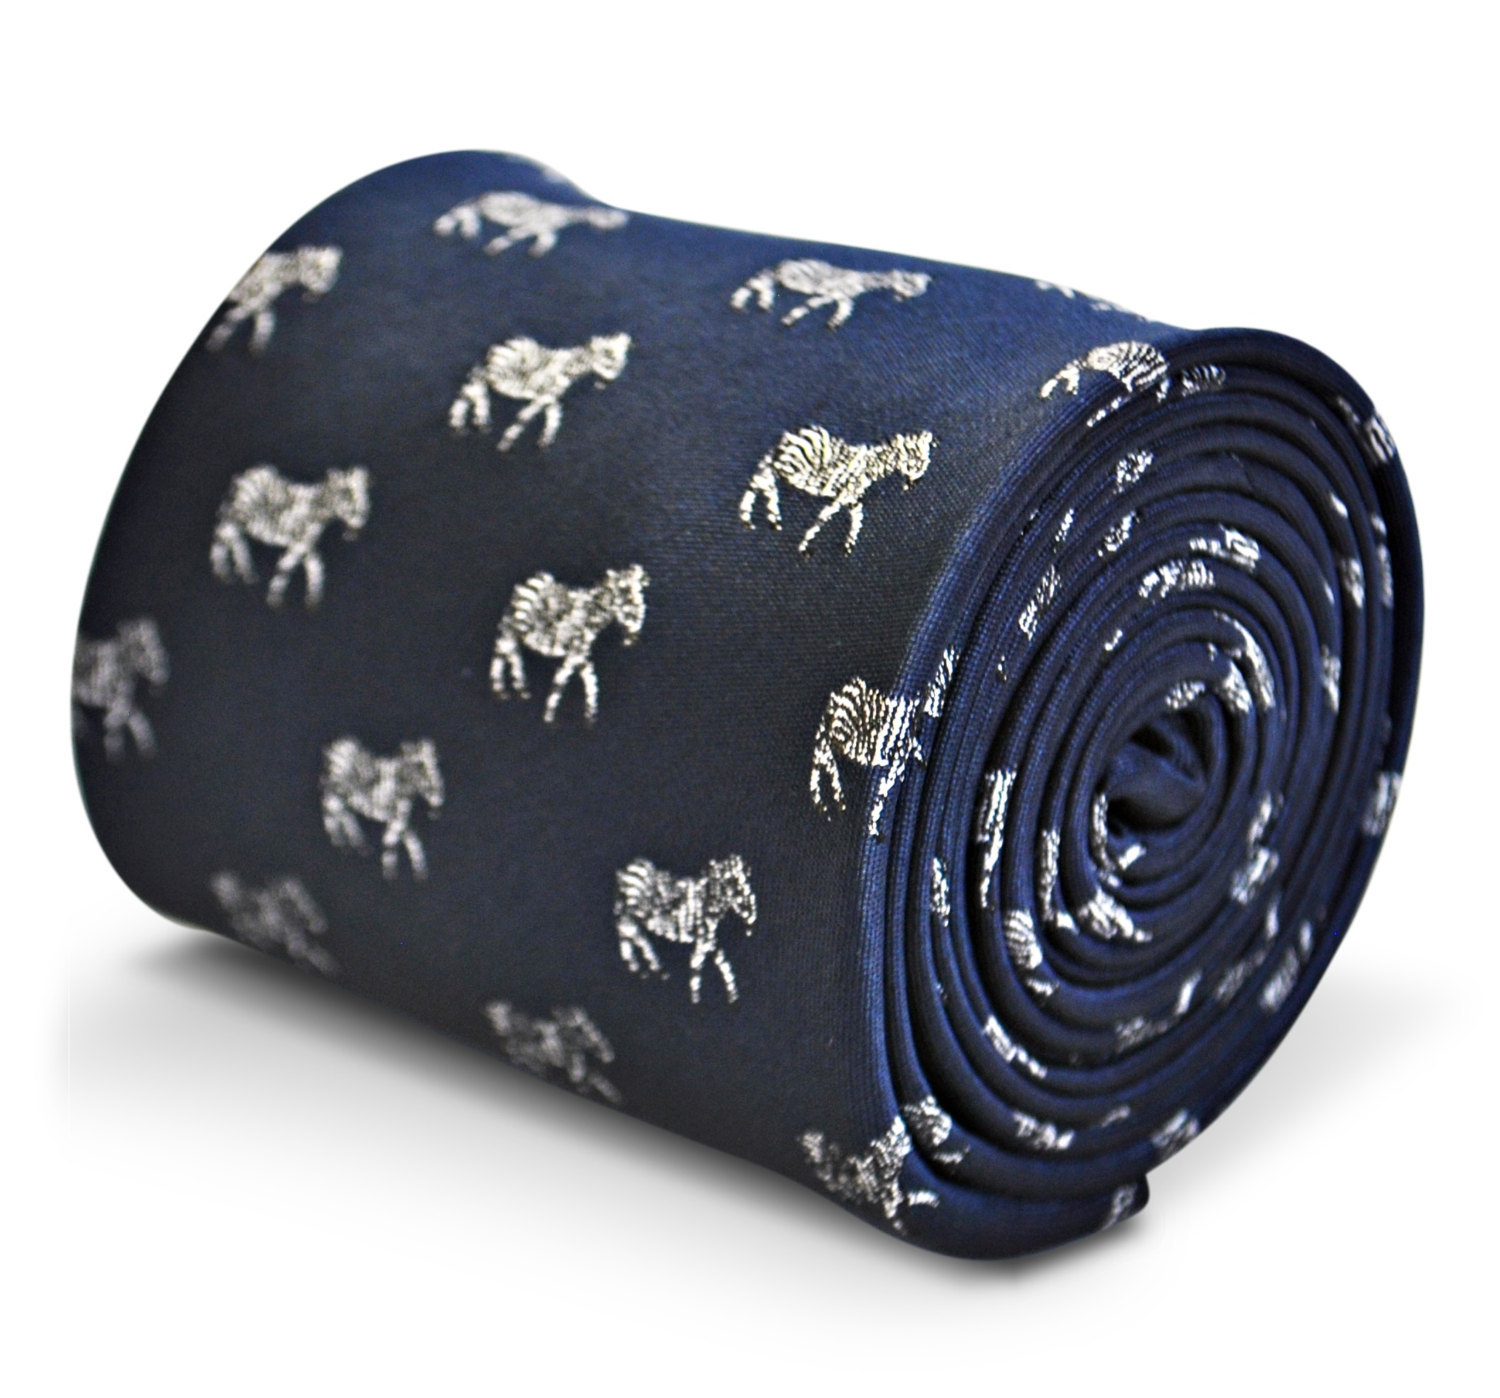 navy blue tie with zebra embroidered design with signature floral design to the